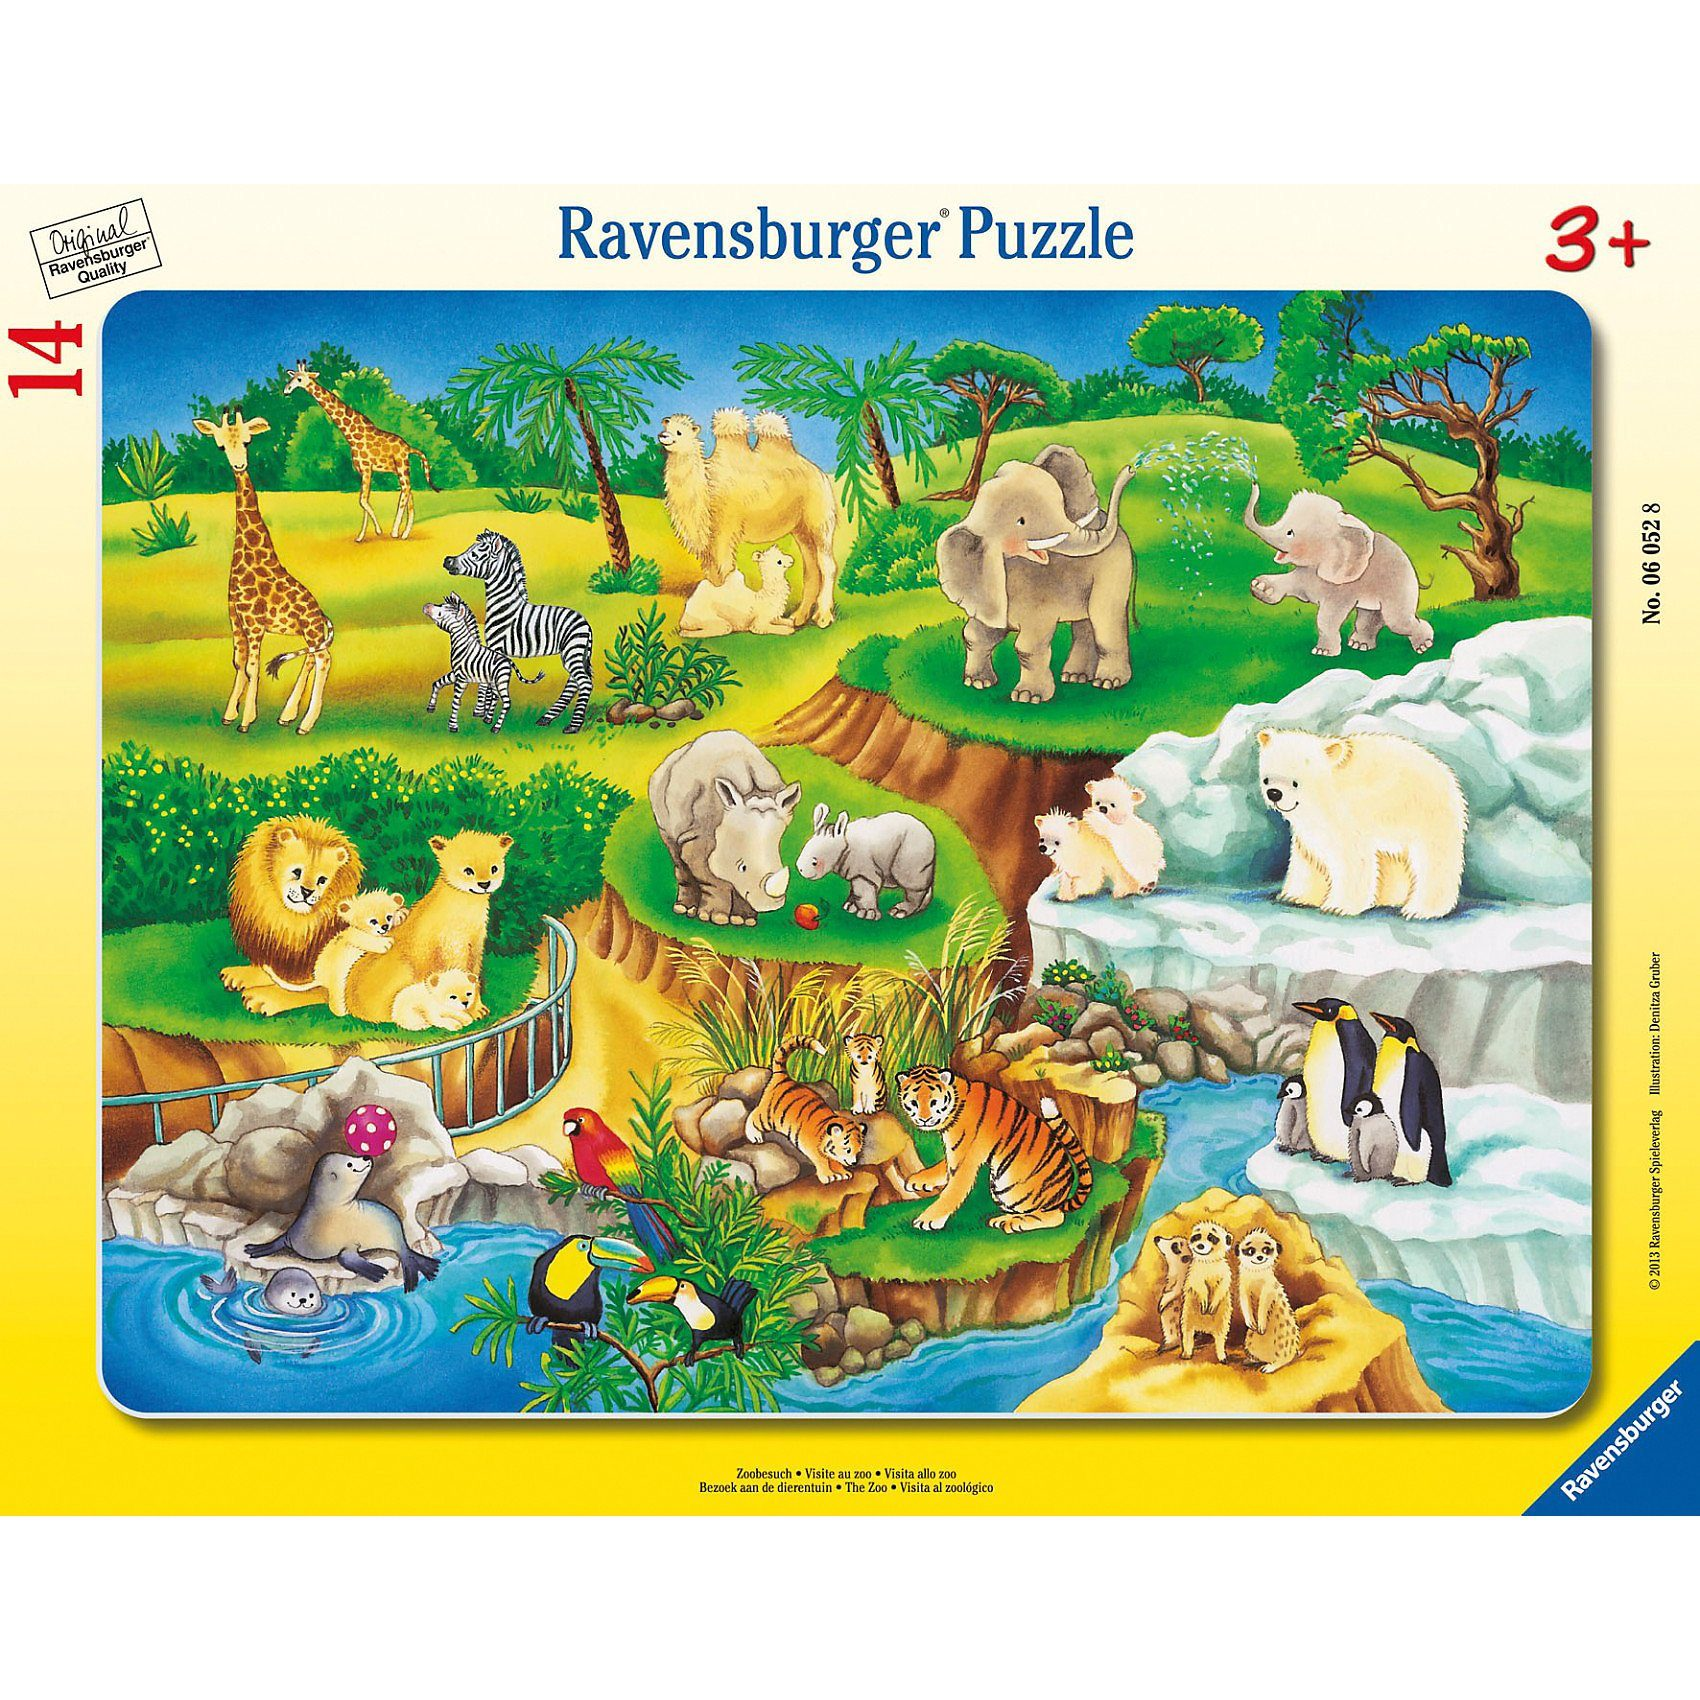 Ravensburger Puzzle Zoobesuch 14 Teile